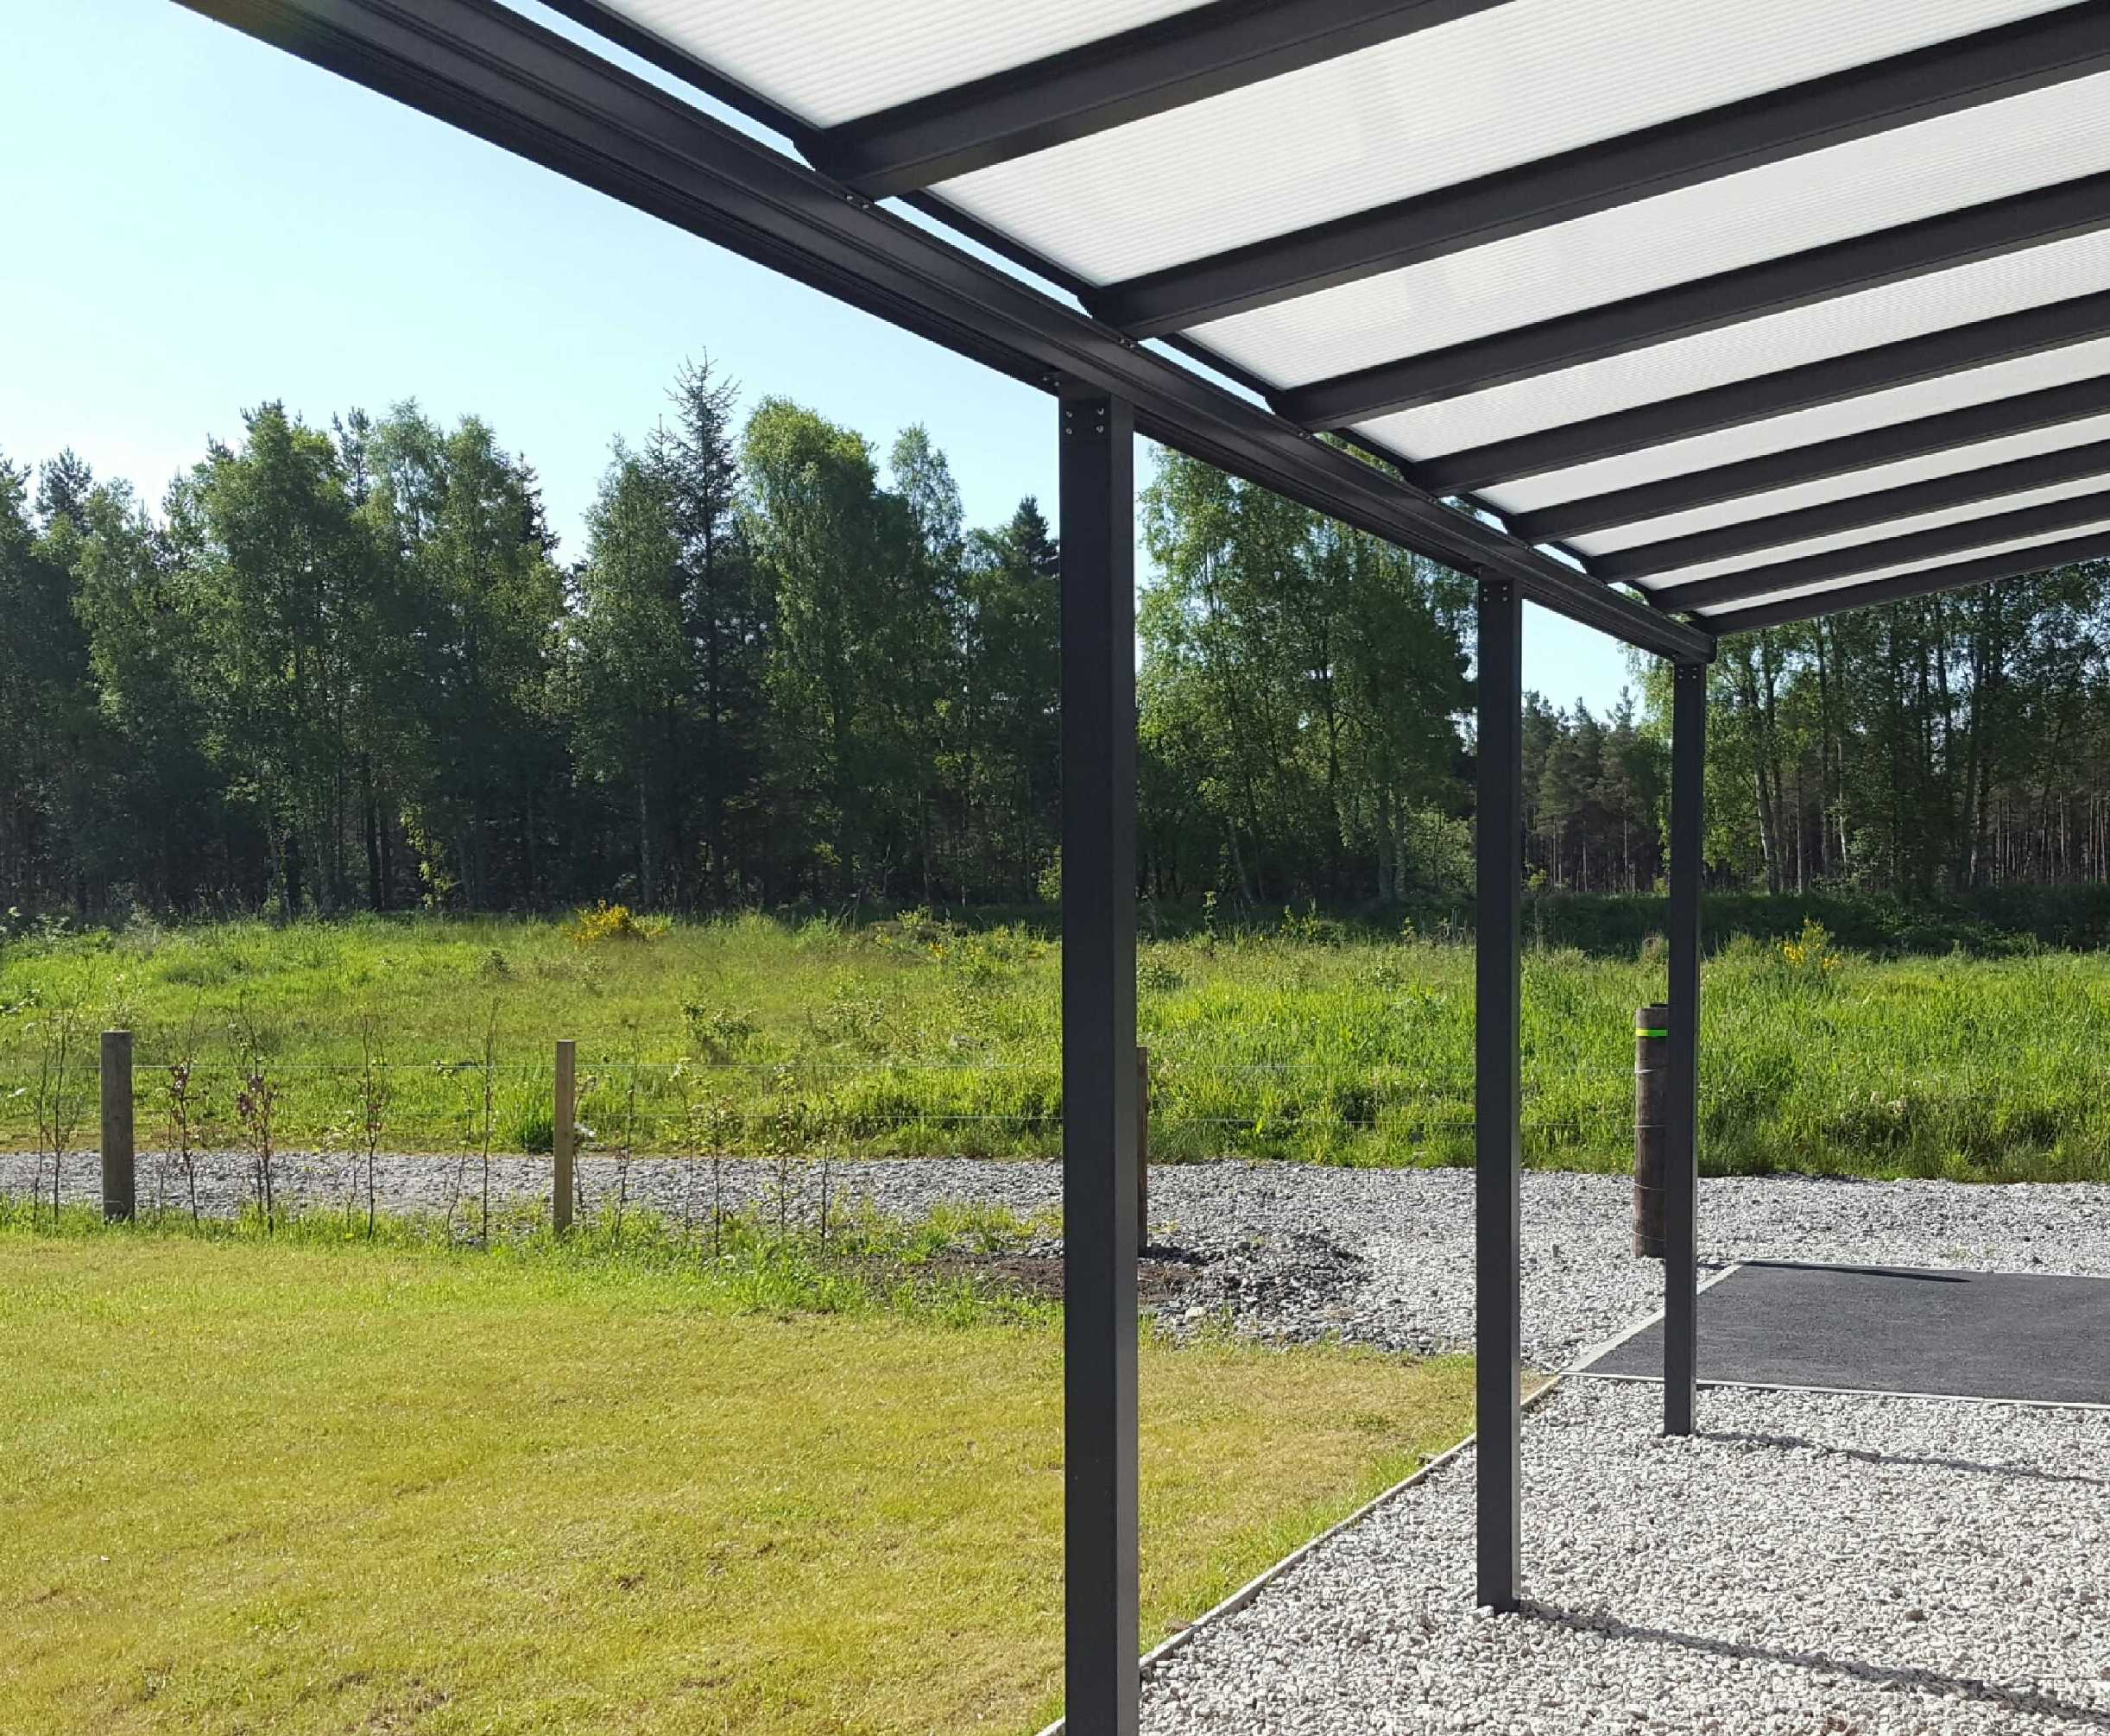 Omega Smart Lean-To Canopy, Anthracite Grey, UNGLAZED for 6mm Glazing - 6.3m (W) x 2.0m (P), (4) Supporting Posts